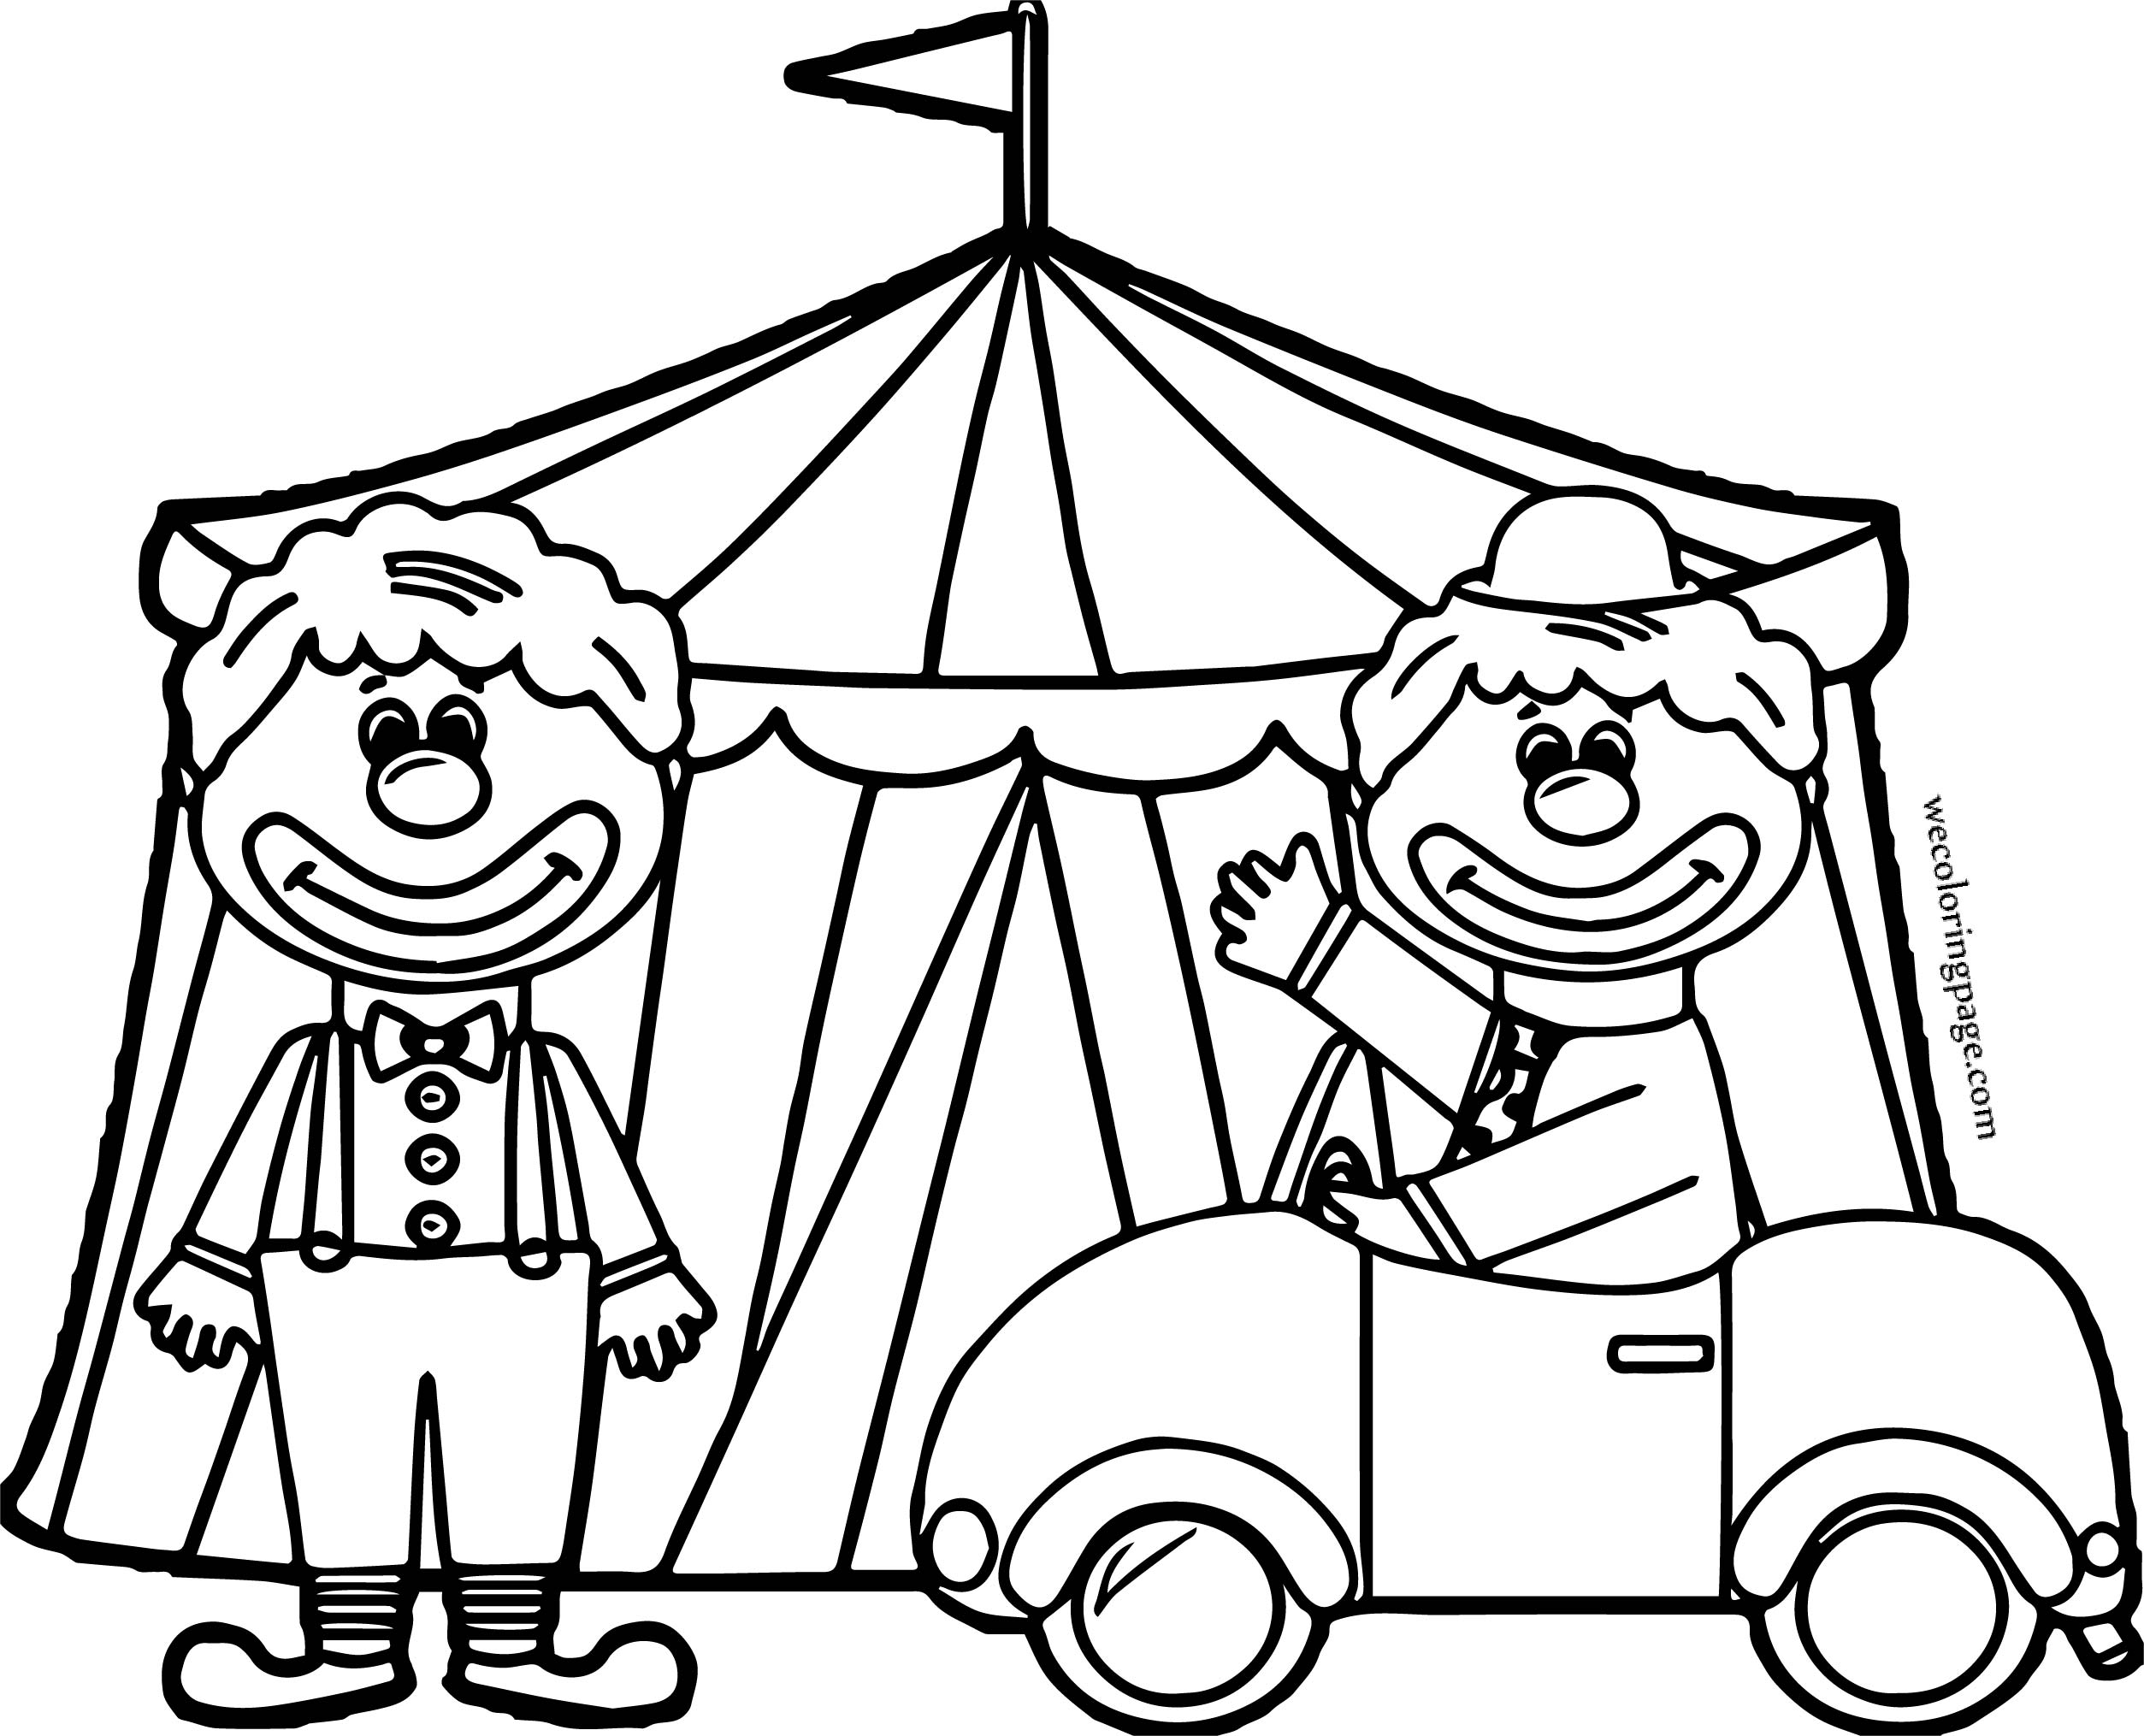 Car Themed Coloring Pages : Circus clown tente car coloring page theme